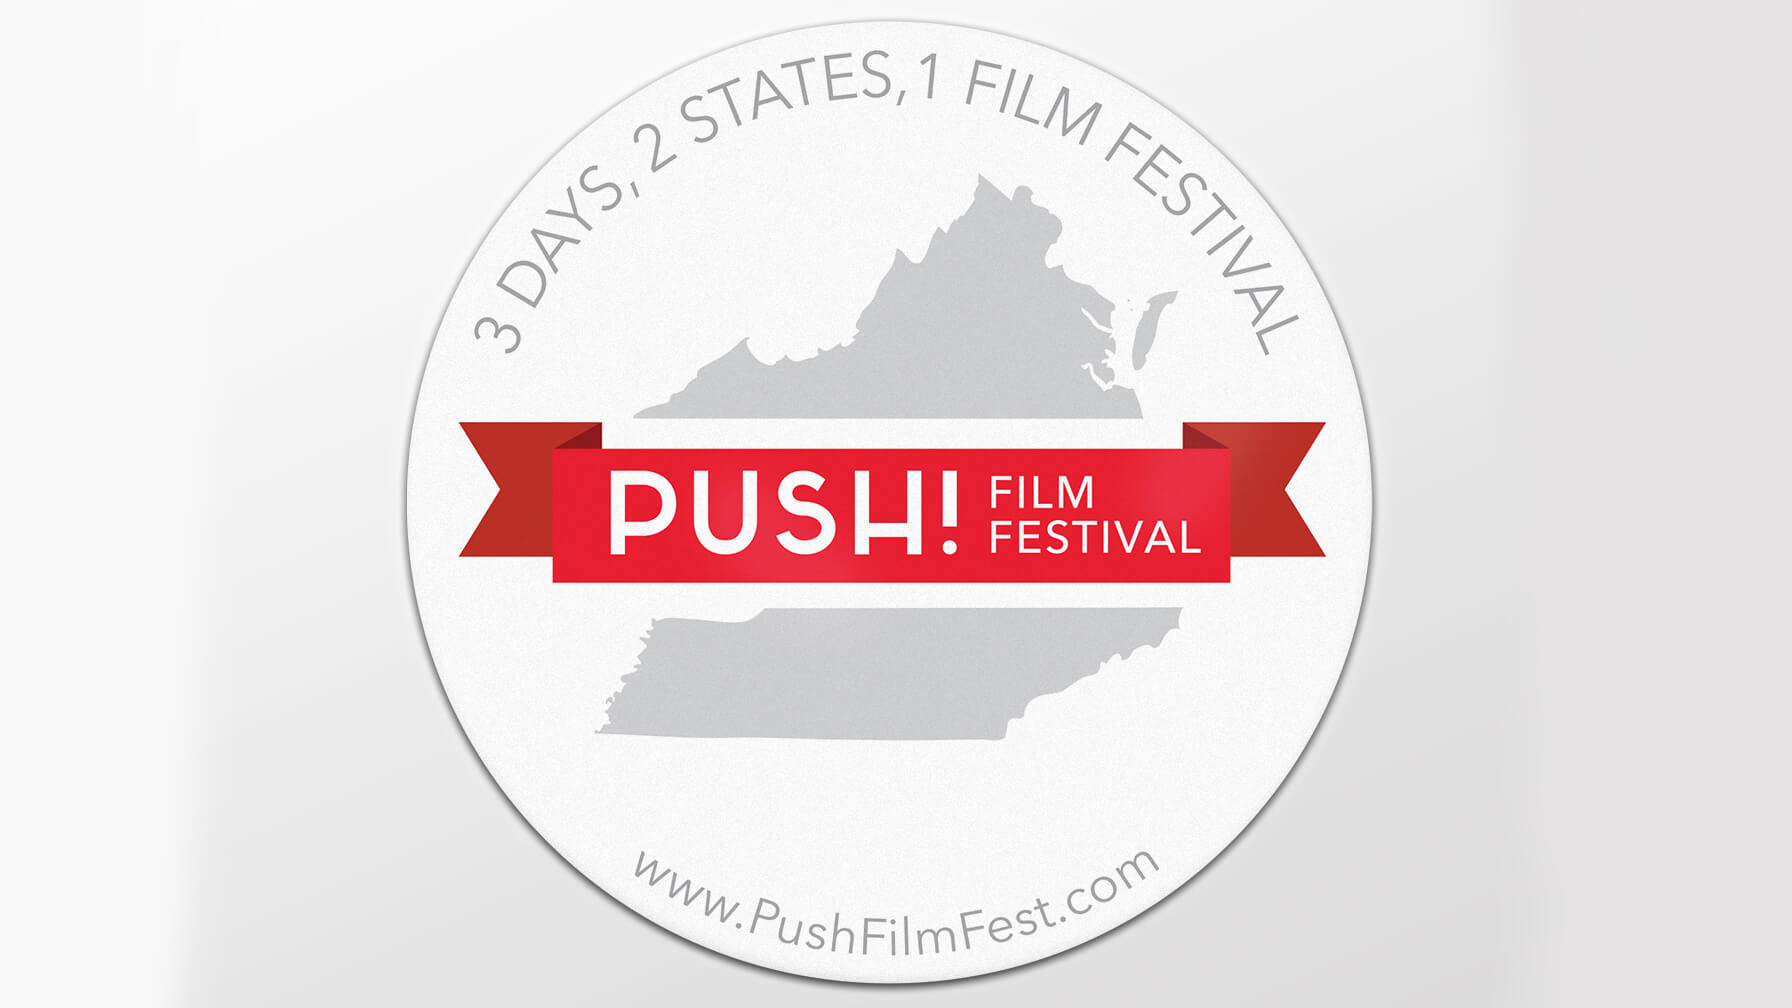 PUSH! Film Festival Sticker